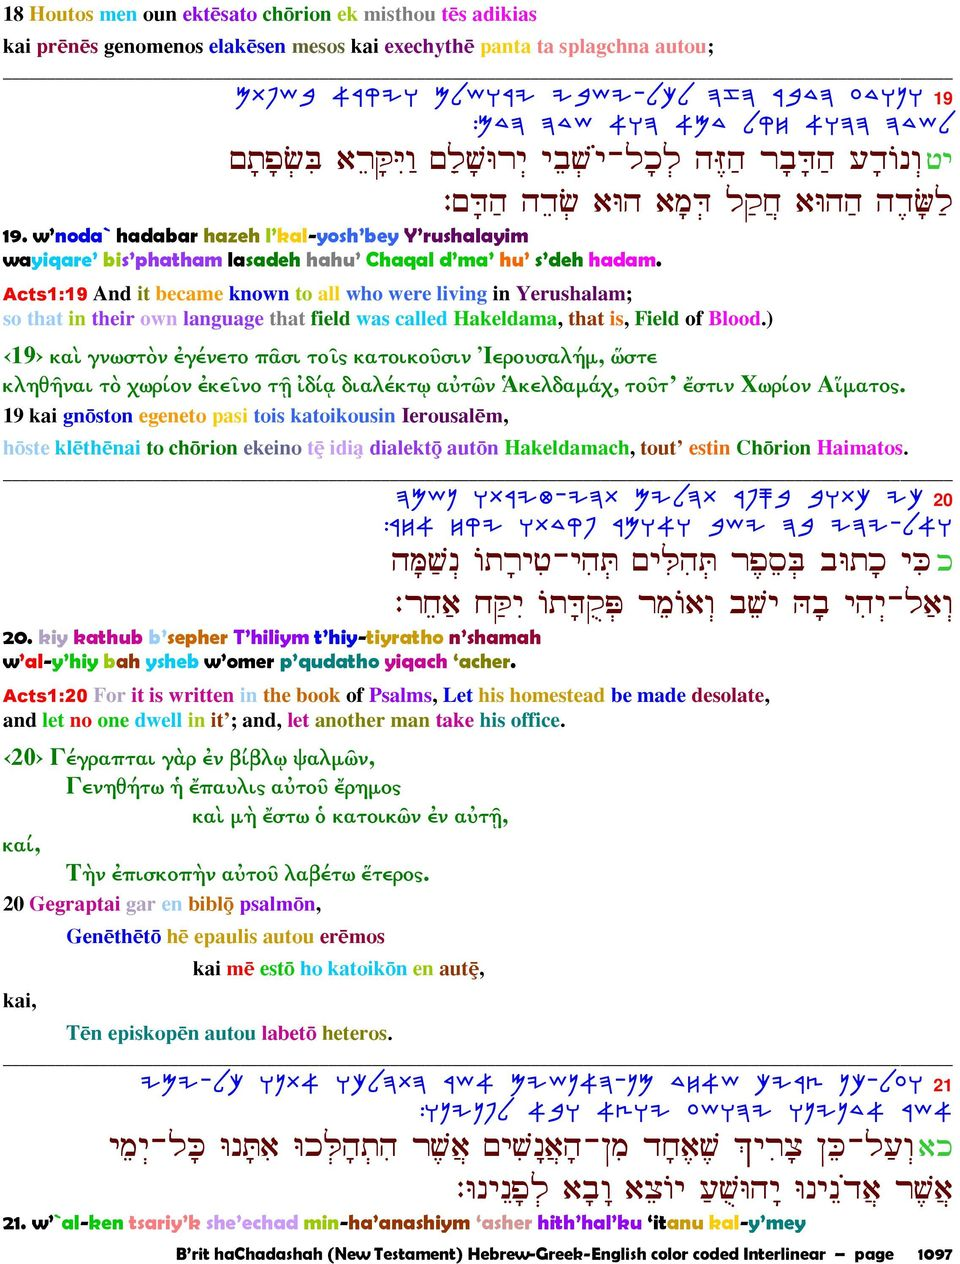 Acts1:19 And it became known to all who were living in Yerushalam; so that in their own language that field was called Hakeldama, that is, Field of Blood.